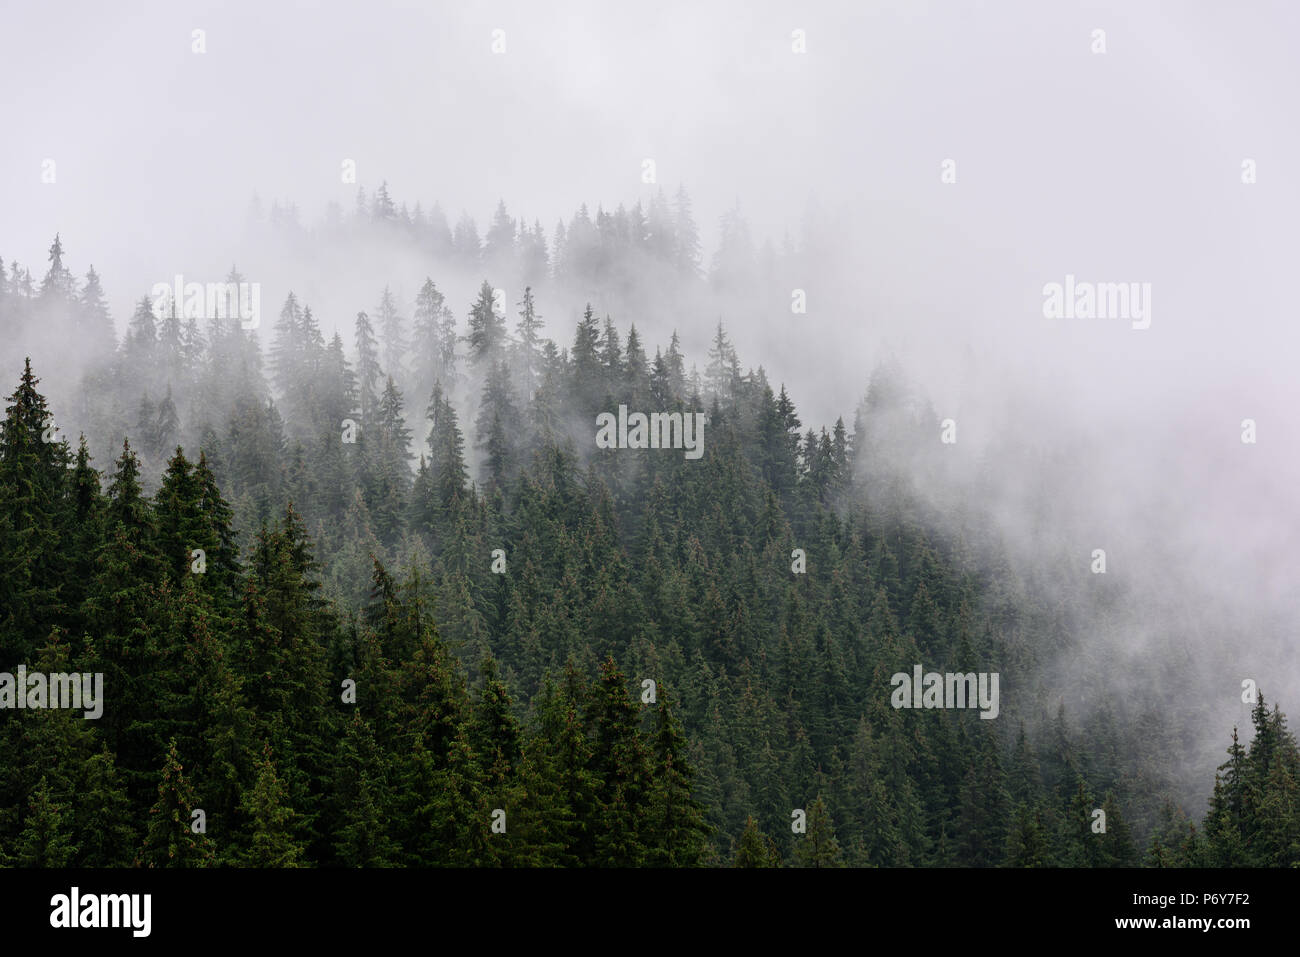 Foggy Pine Forest. Stock Photo